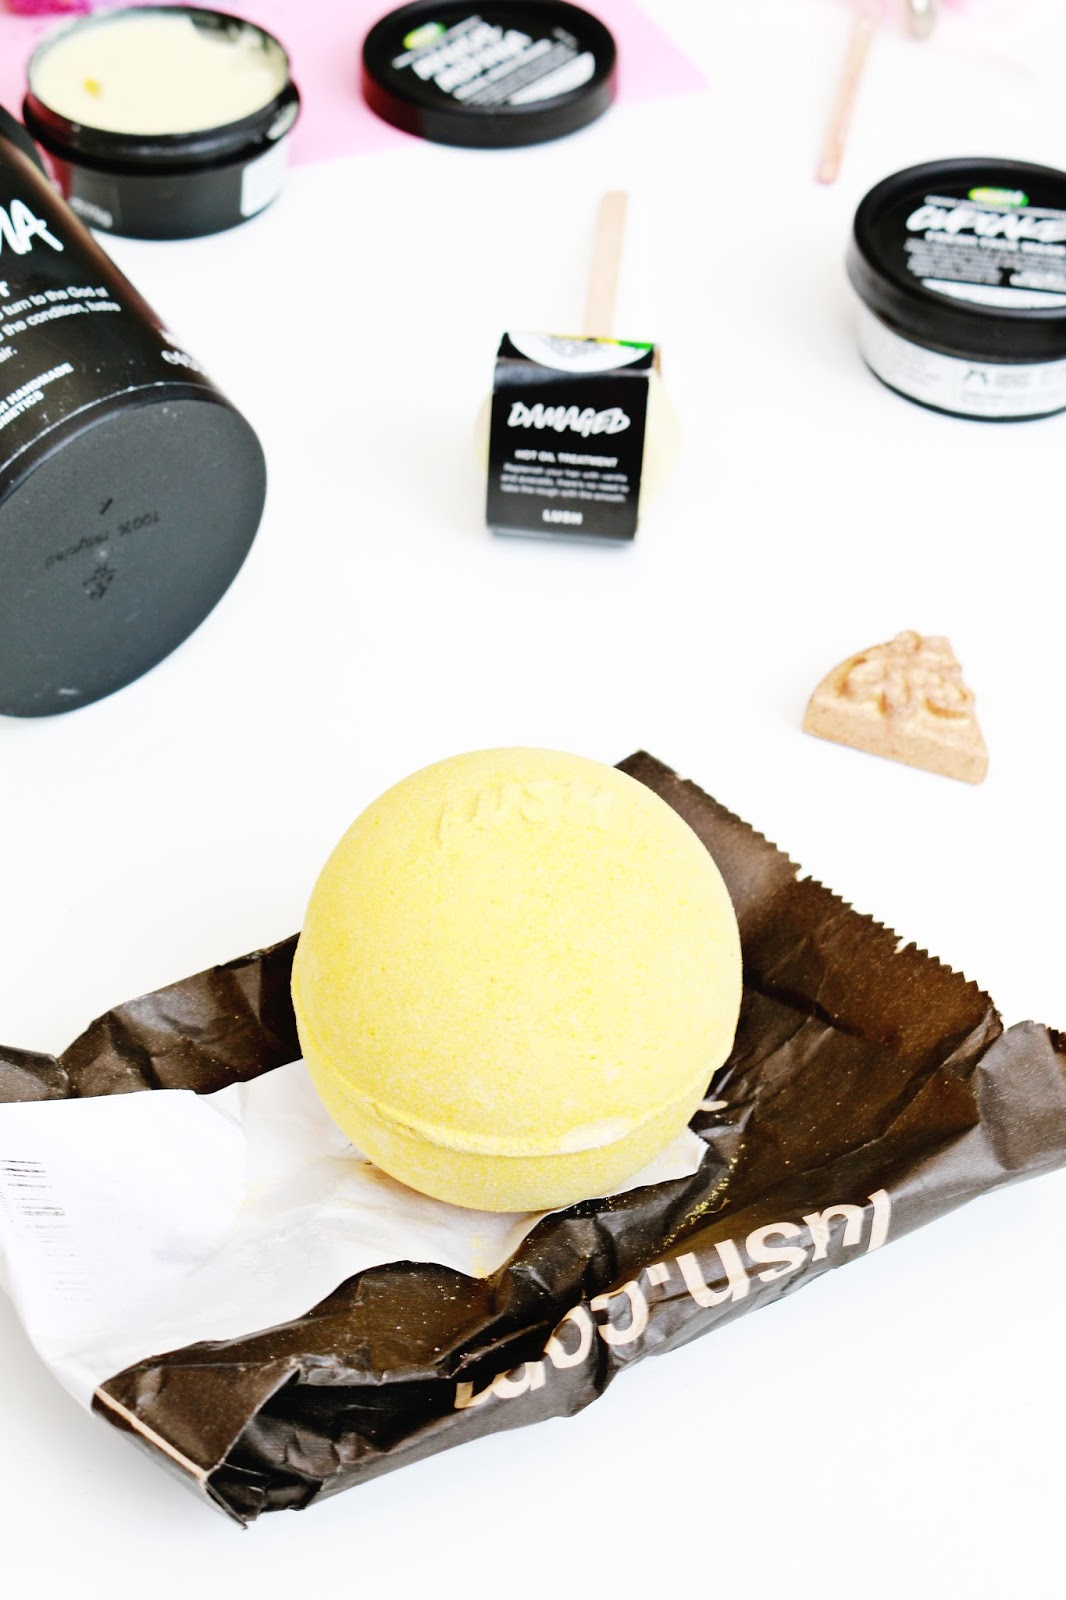 Beauty, Lush, Lush Cosmetics, Shopping, Lush Bath Bombs, Lush Skincare, Lush Oxford Street,